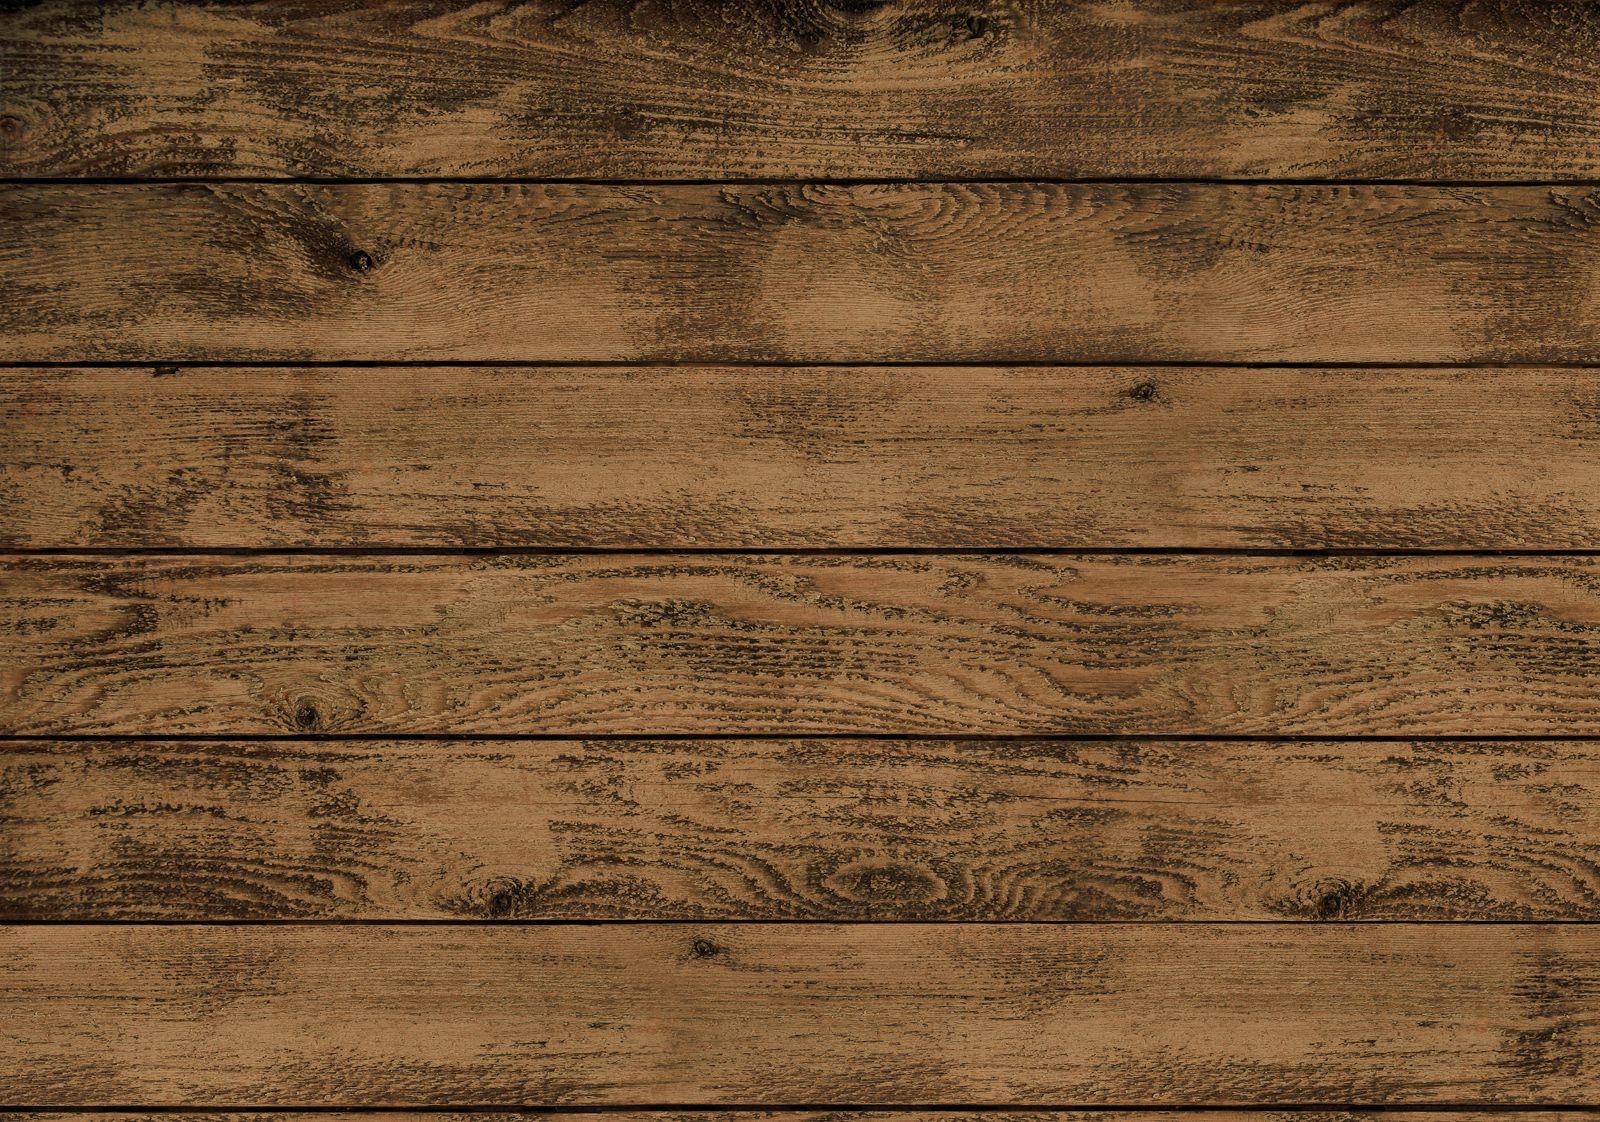 17 Best images about woodgrain on Pinterest | iPad, Weathered wood ...